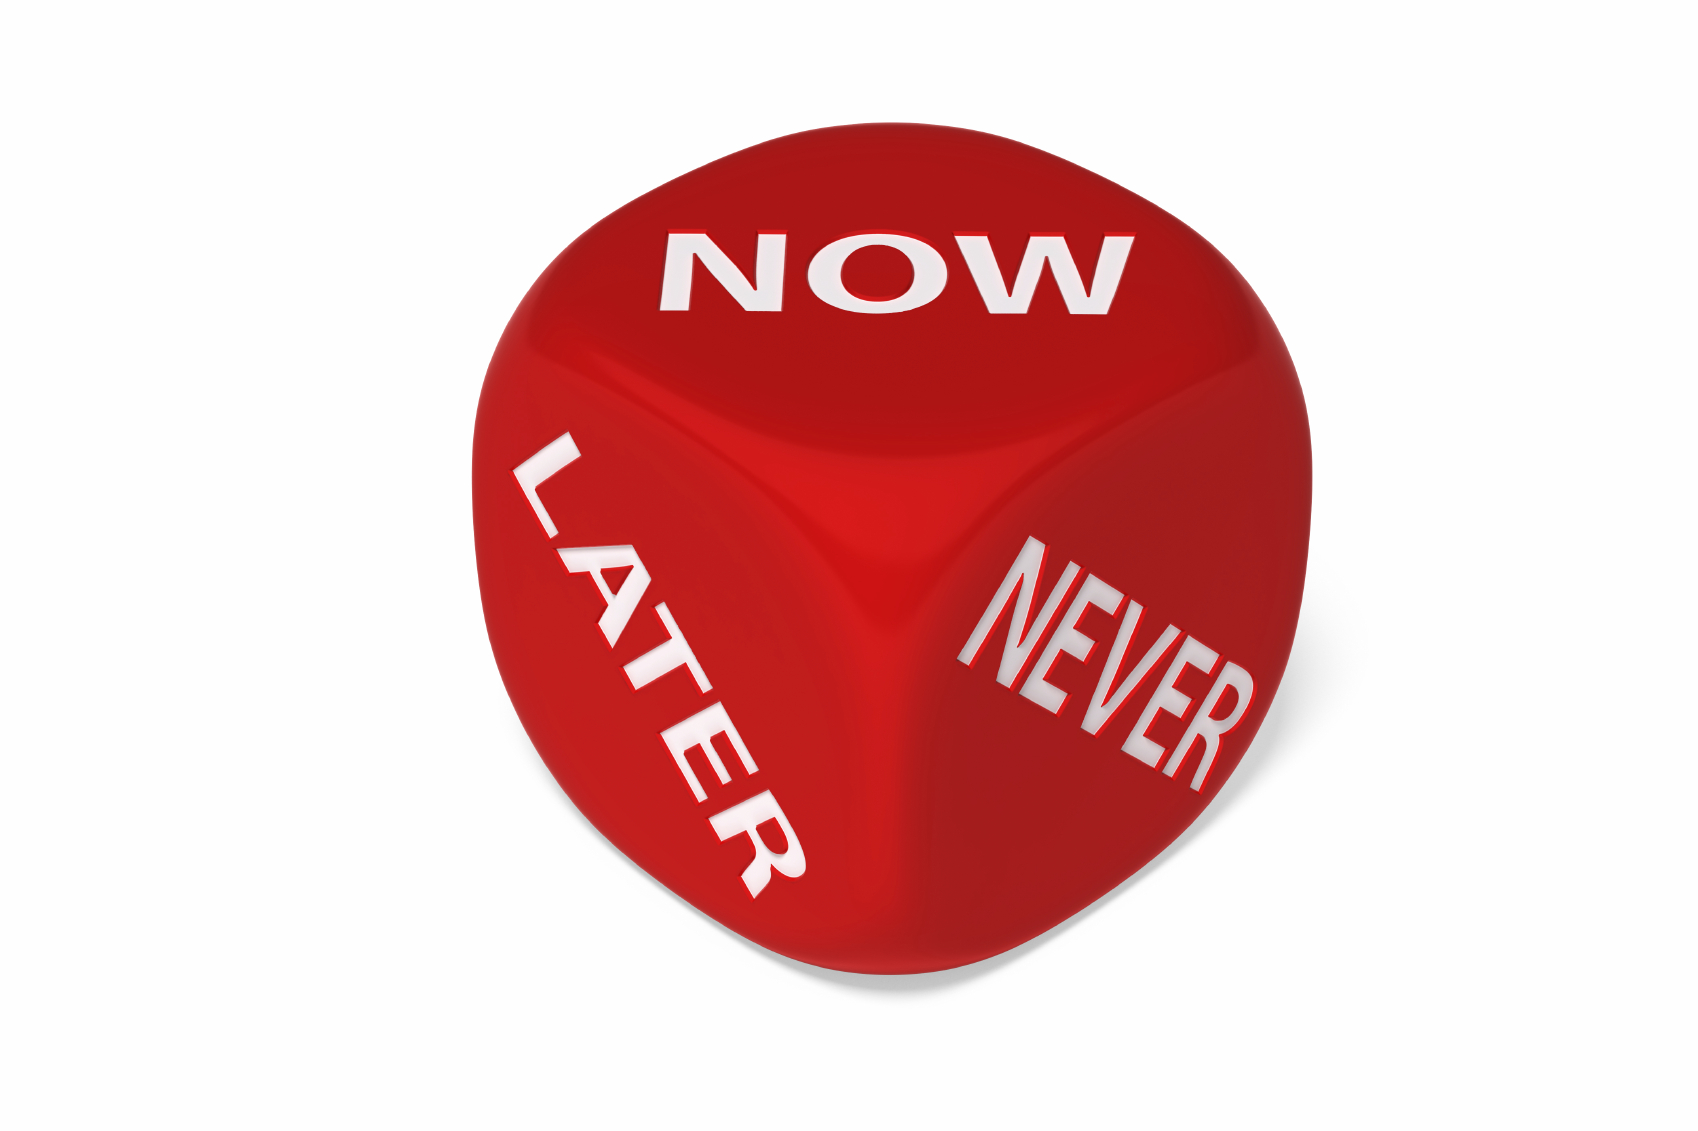 NOW_LATER_NEVER_dice